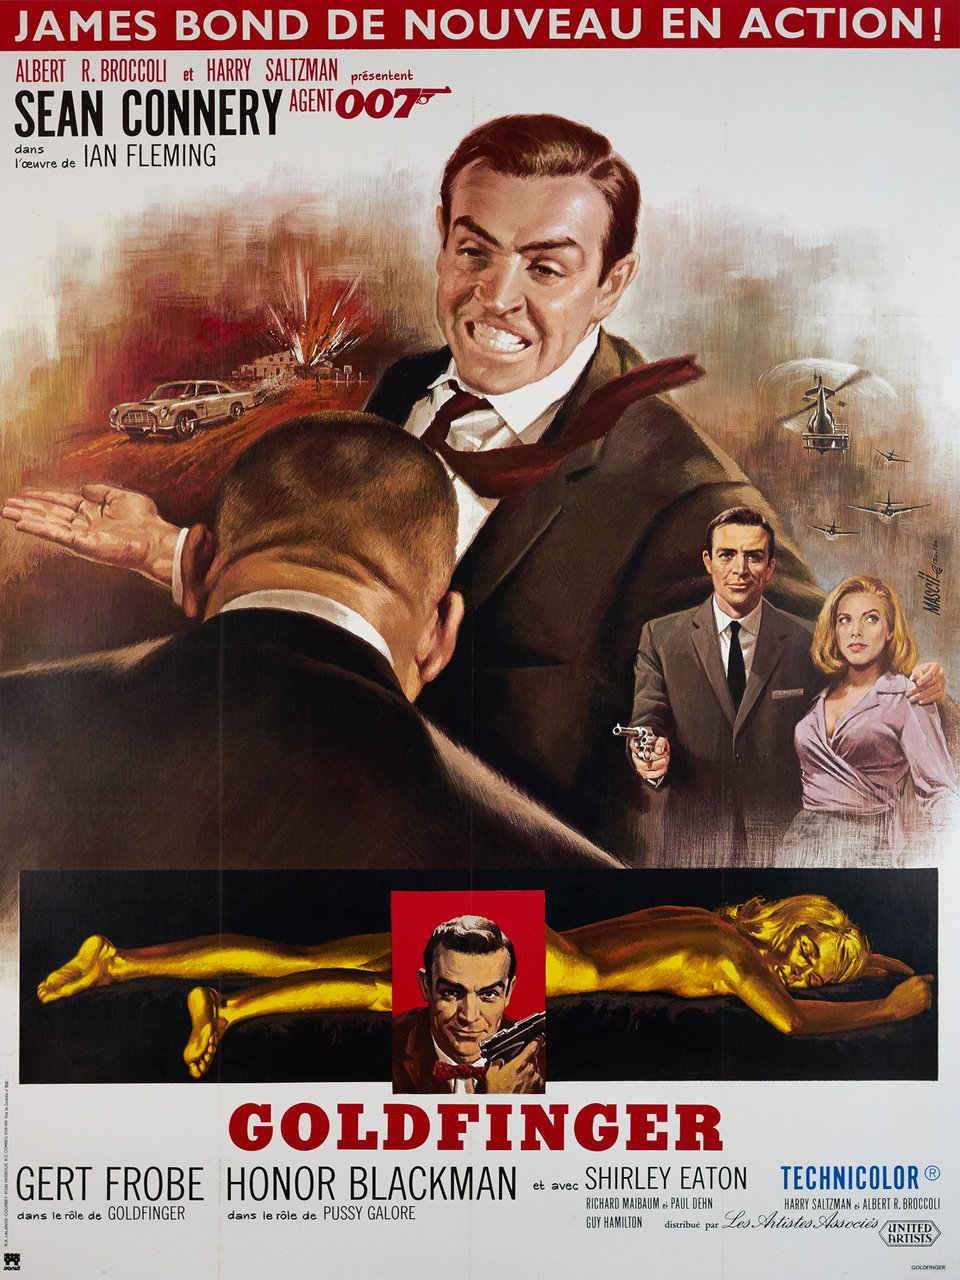 James Bond 007, Goldfinger – Vintage poster – Jean MASCII – 1985